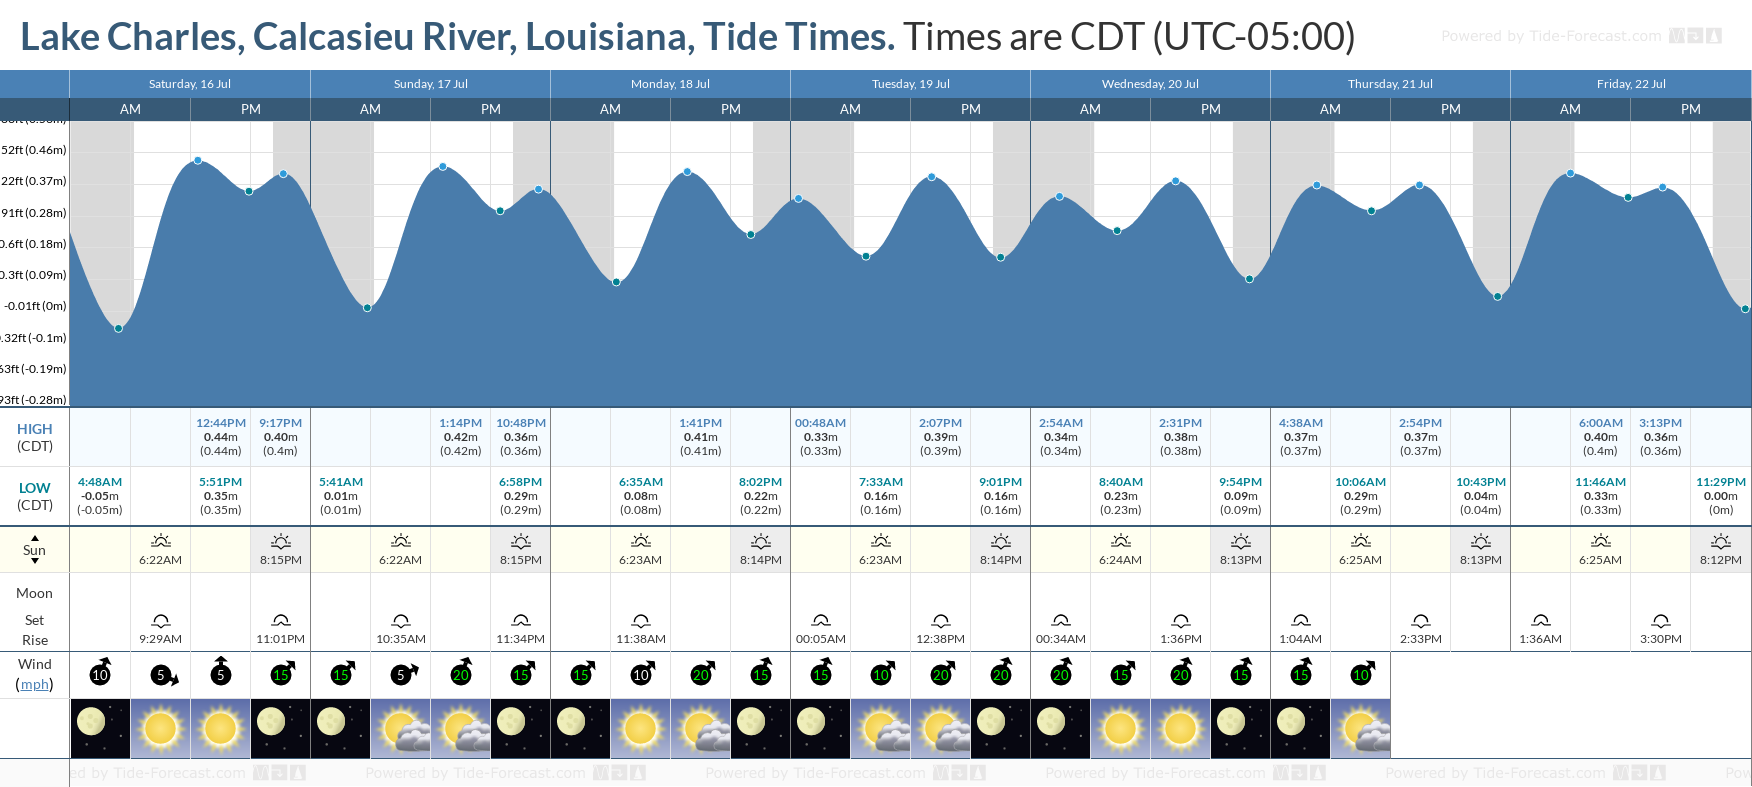 Lake Charles, Calcasieu River, Louisiana Tide Chart including high and low tide tide times for the next 7 days